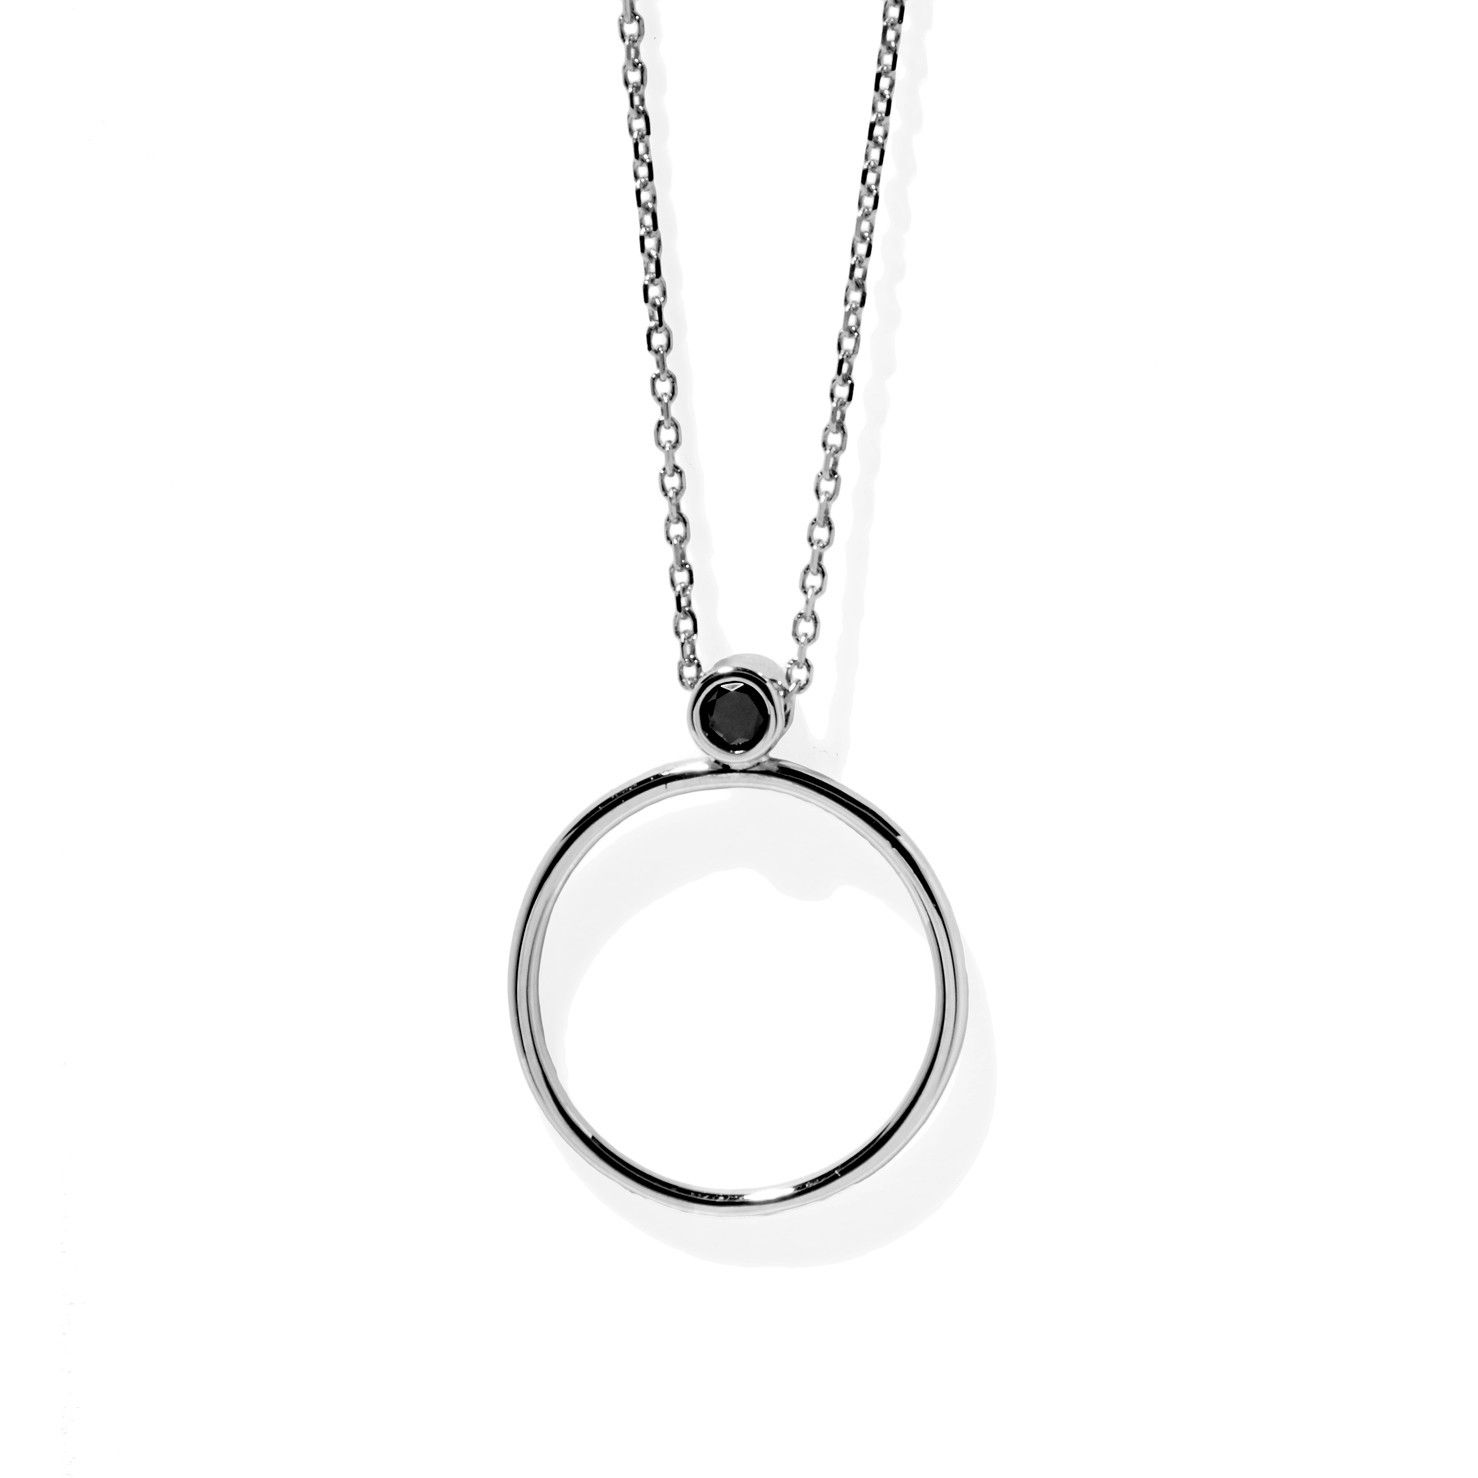 Timeless necklace featuring an open circular pendant with a single